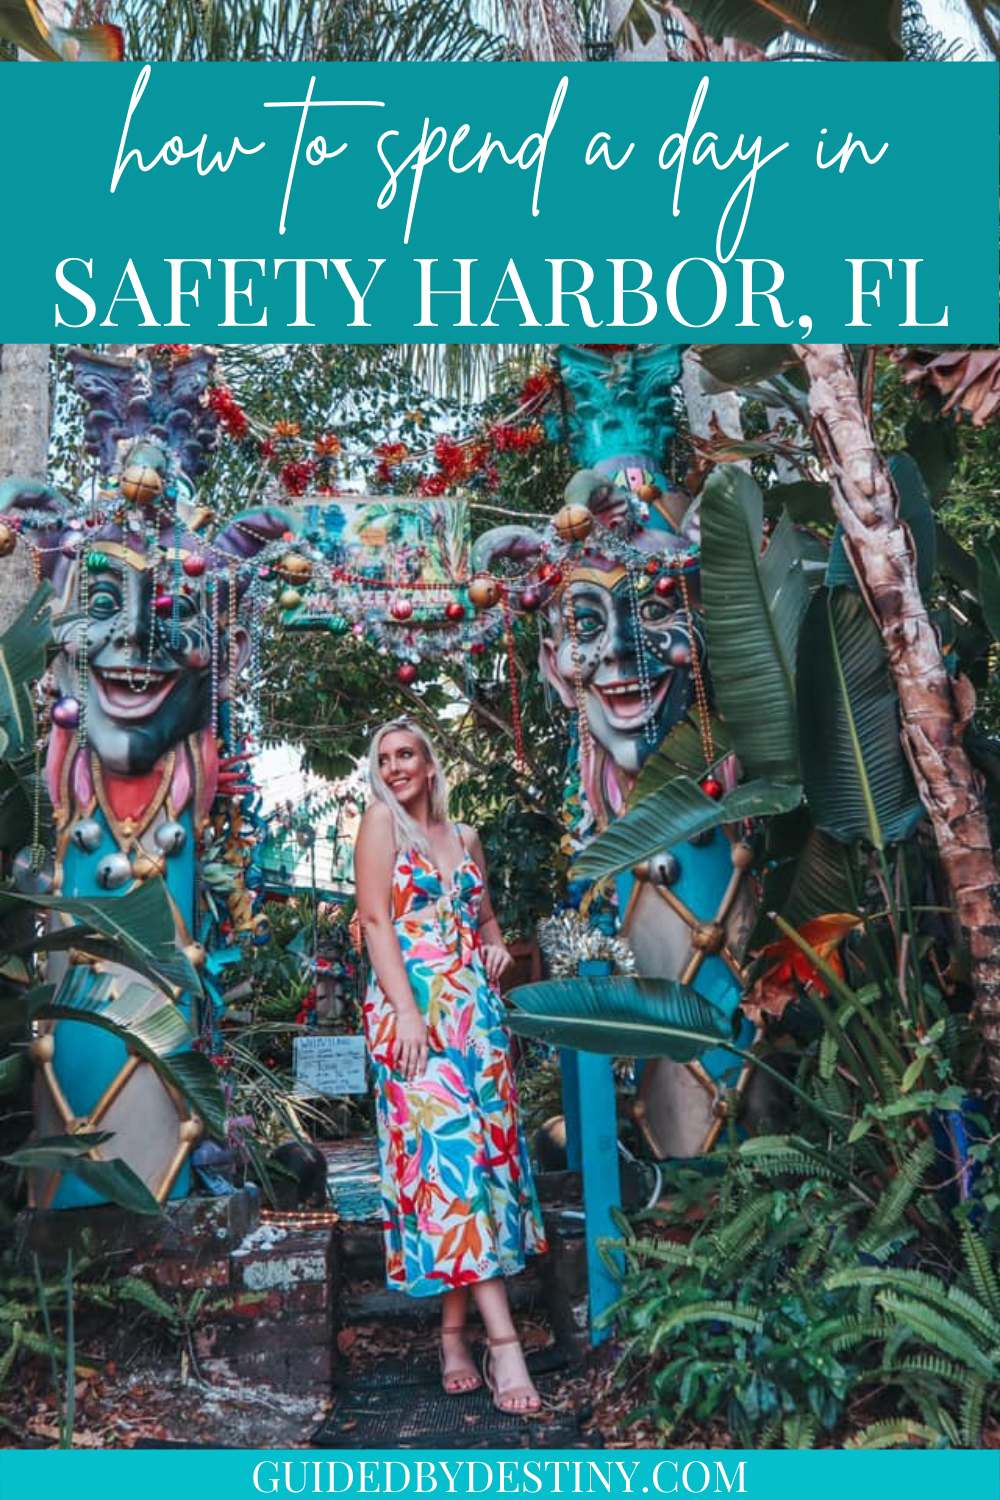 How to spend a day in Safety Harbor, Florida